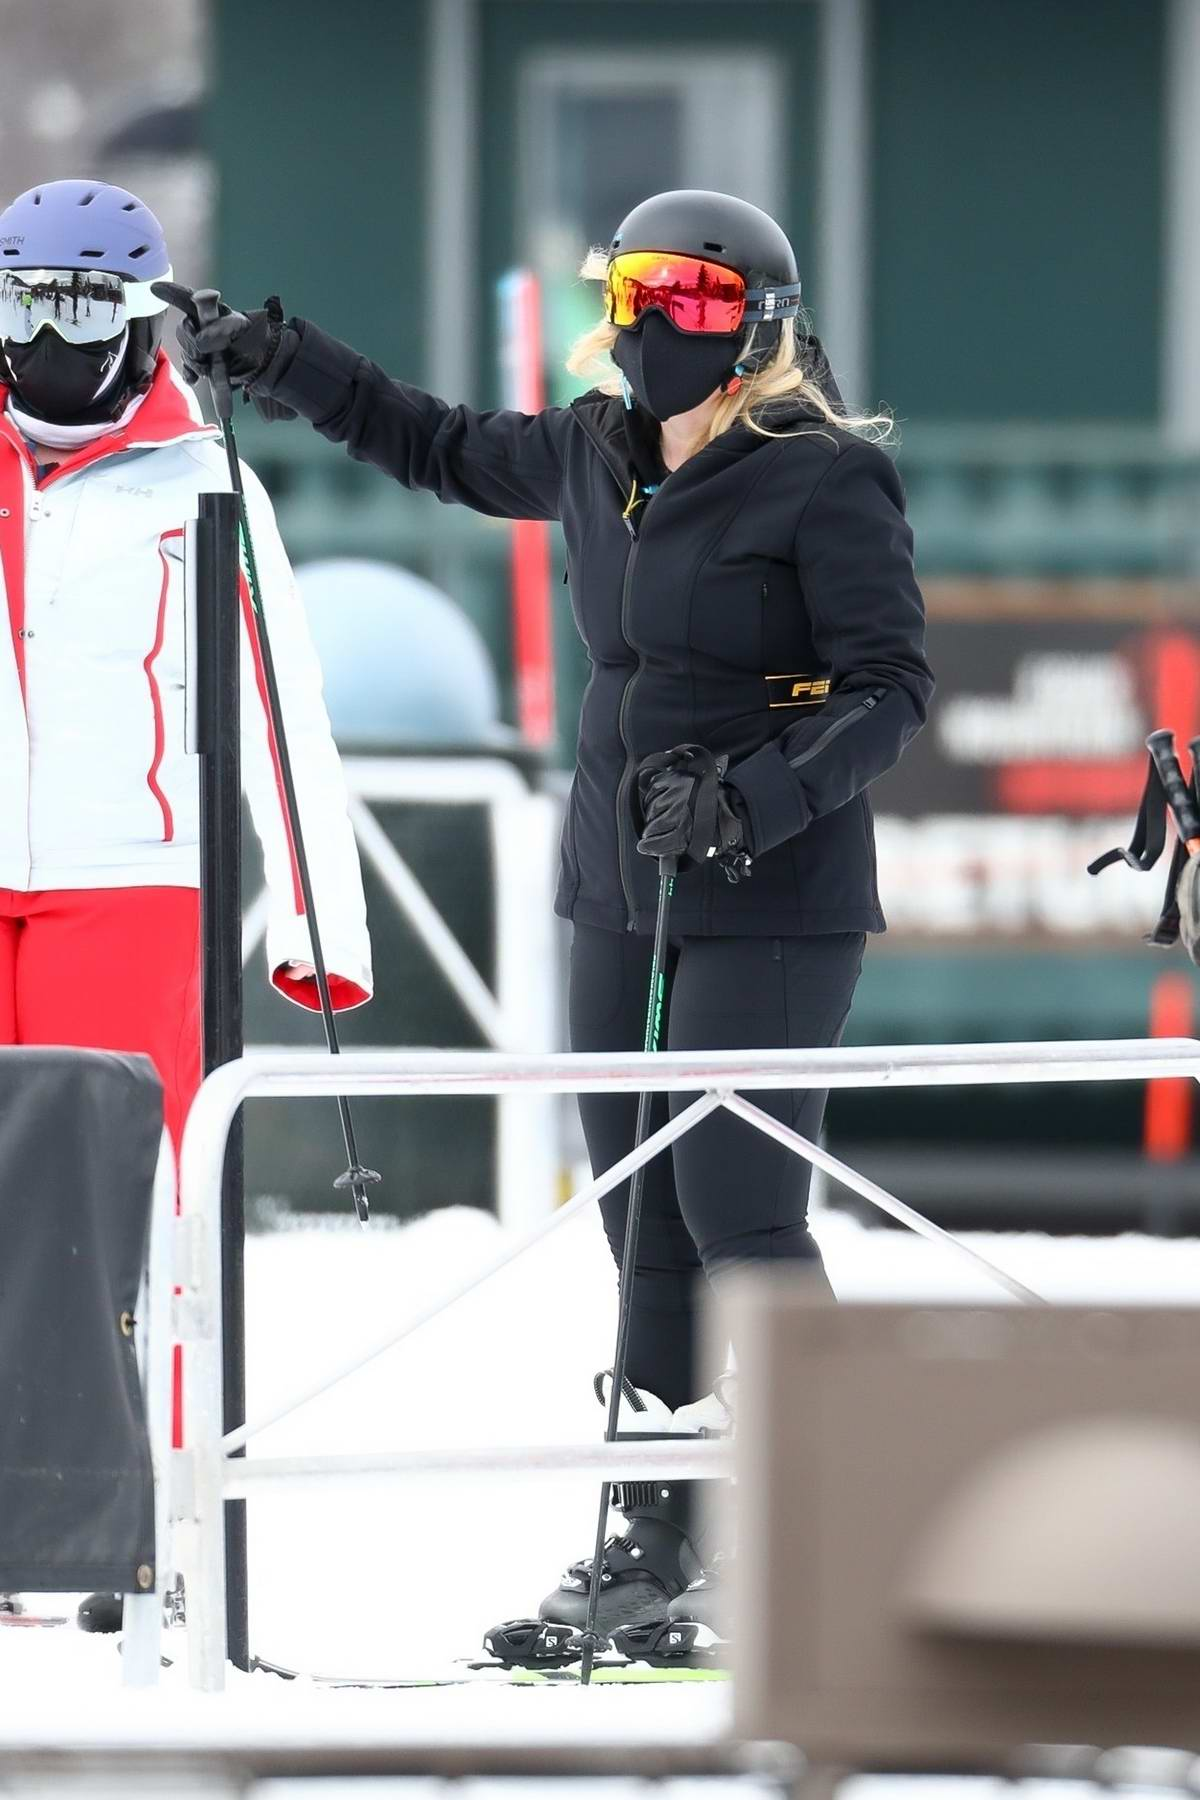 Rebel Wilson has a fun day as she goes skiing with her sister and later enjoys dinner boyfriend Jacob Busch in Aspen, Colorado